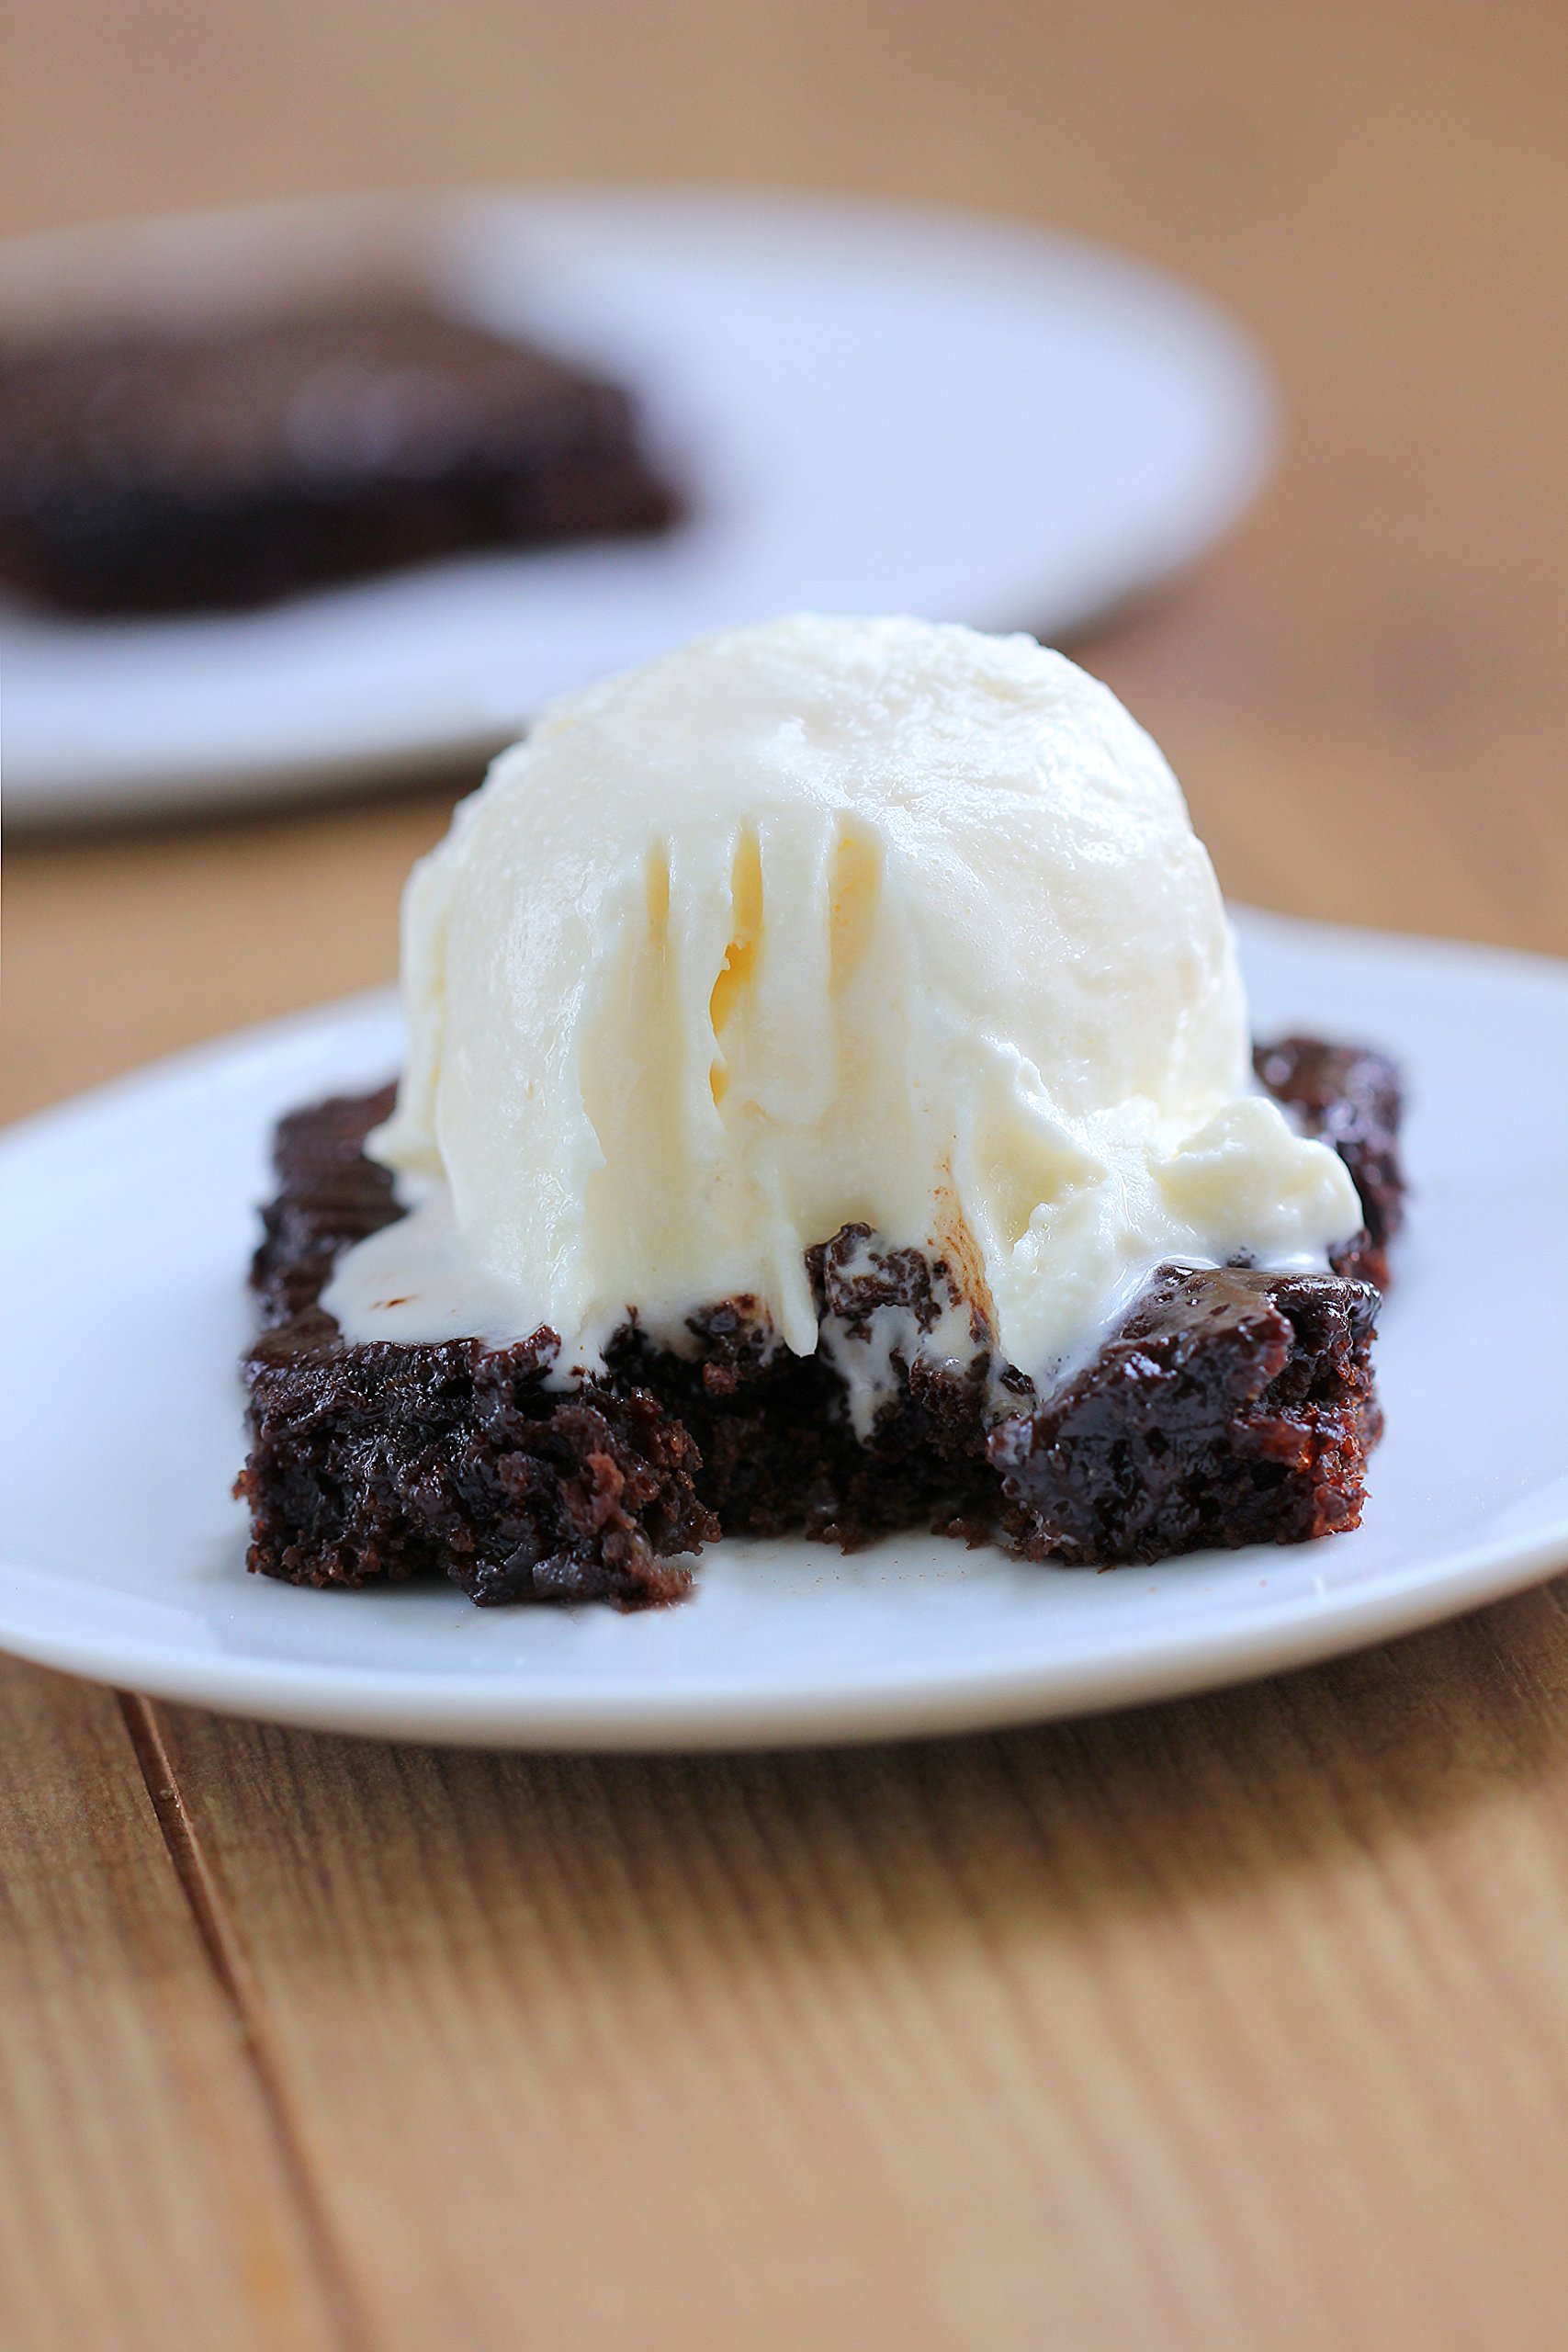 Chocolate-Covered Katie: Over 80 Delicious Recipes That Are ...